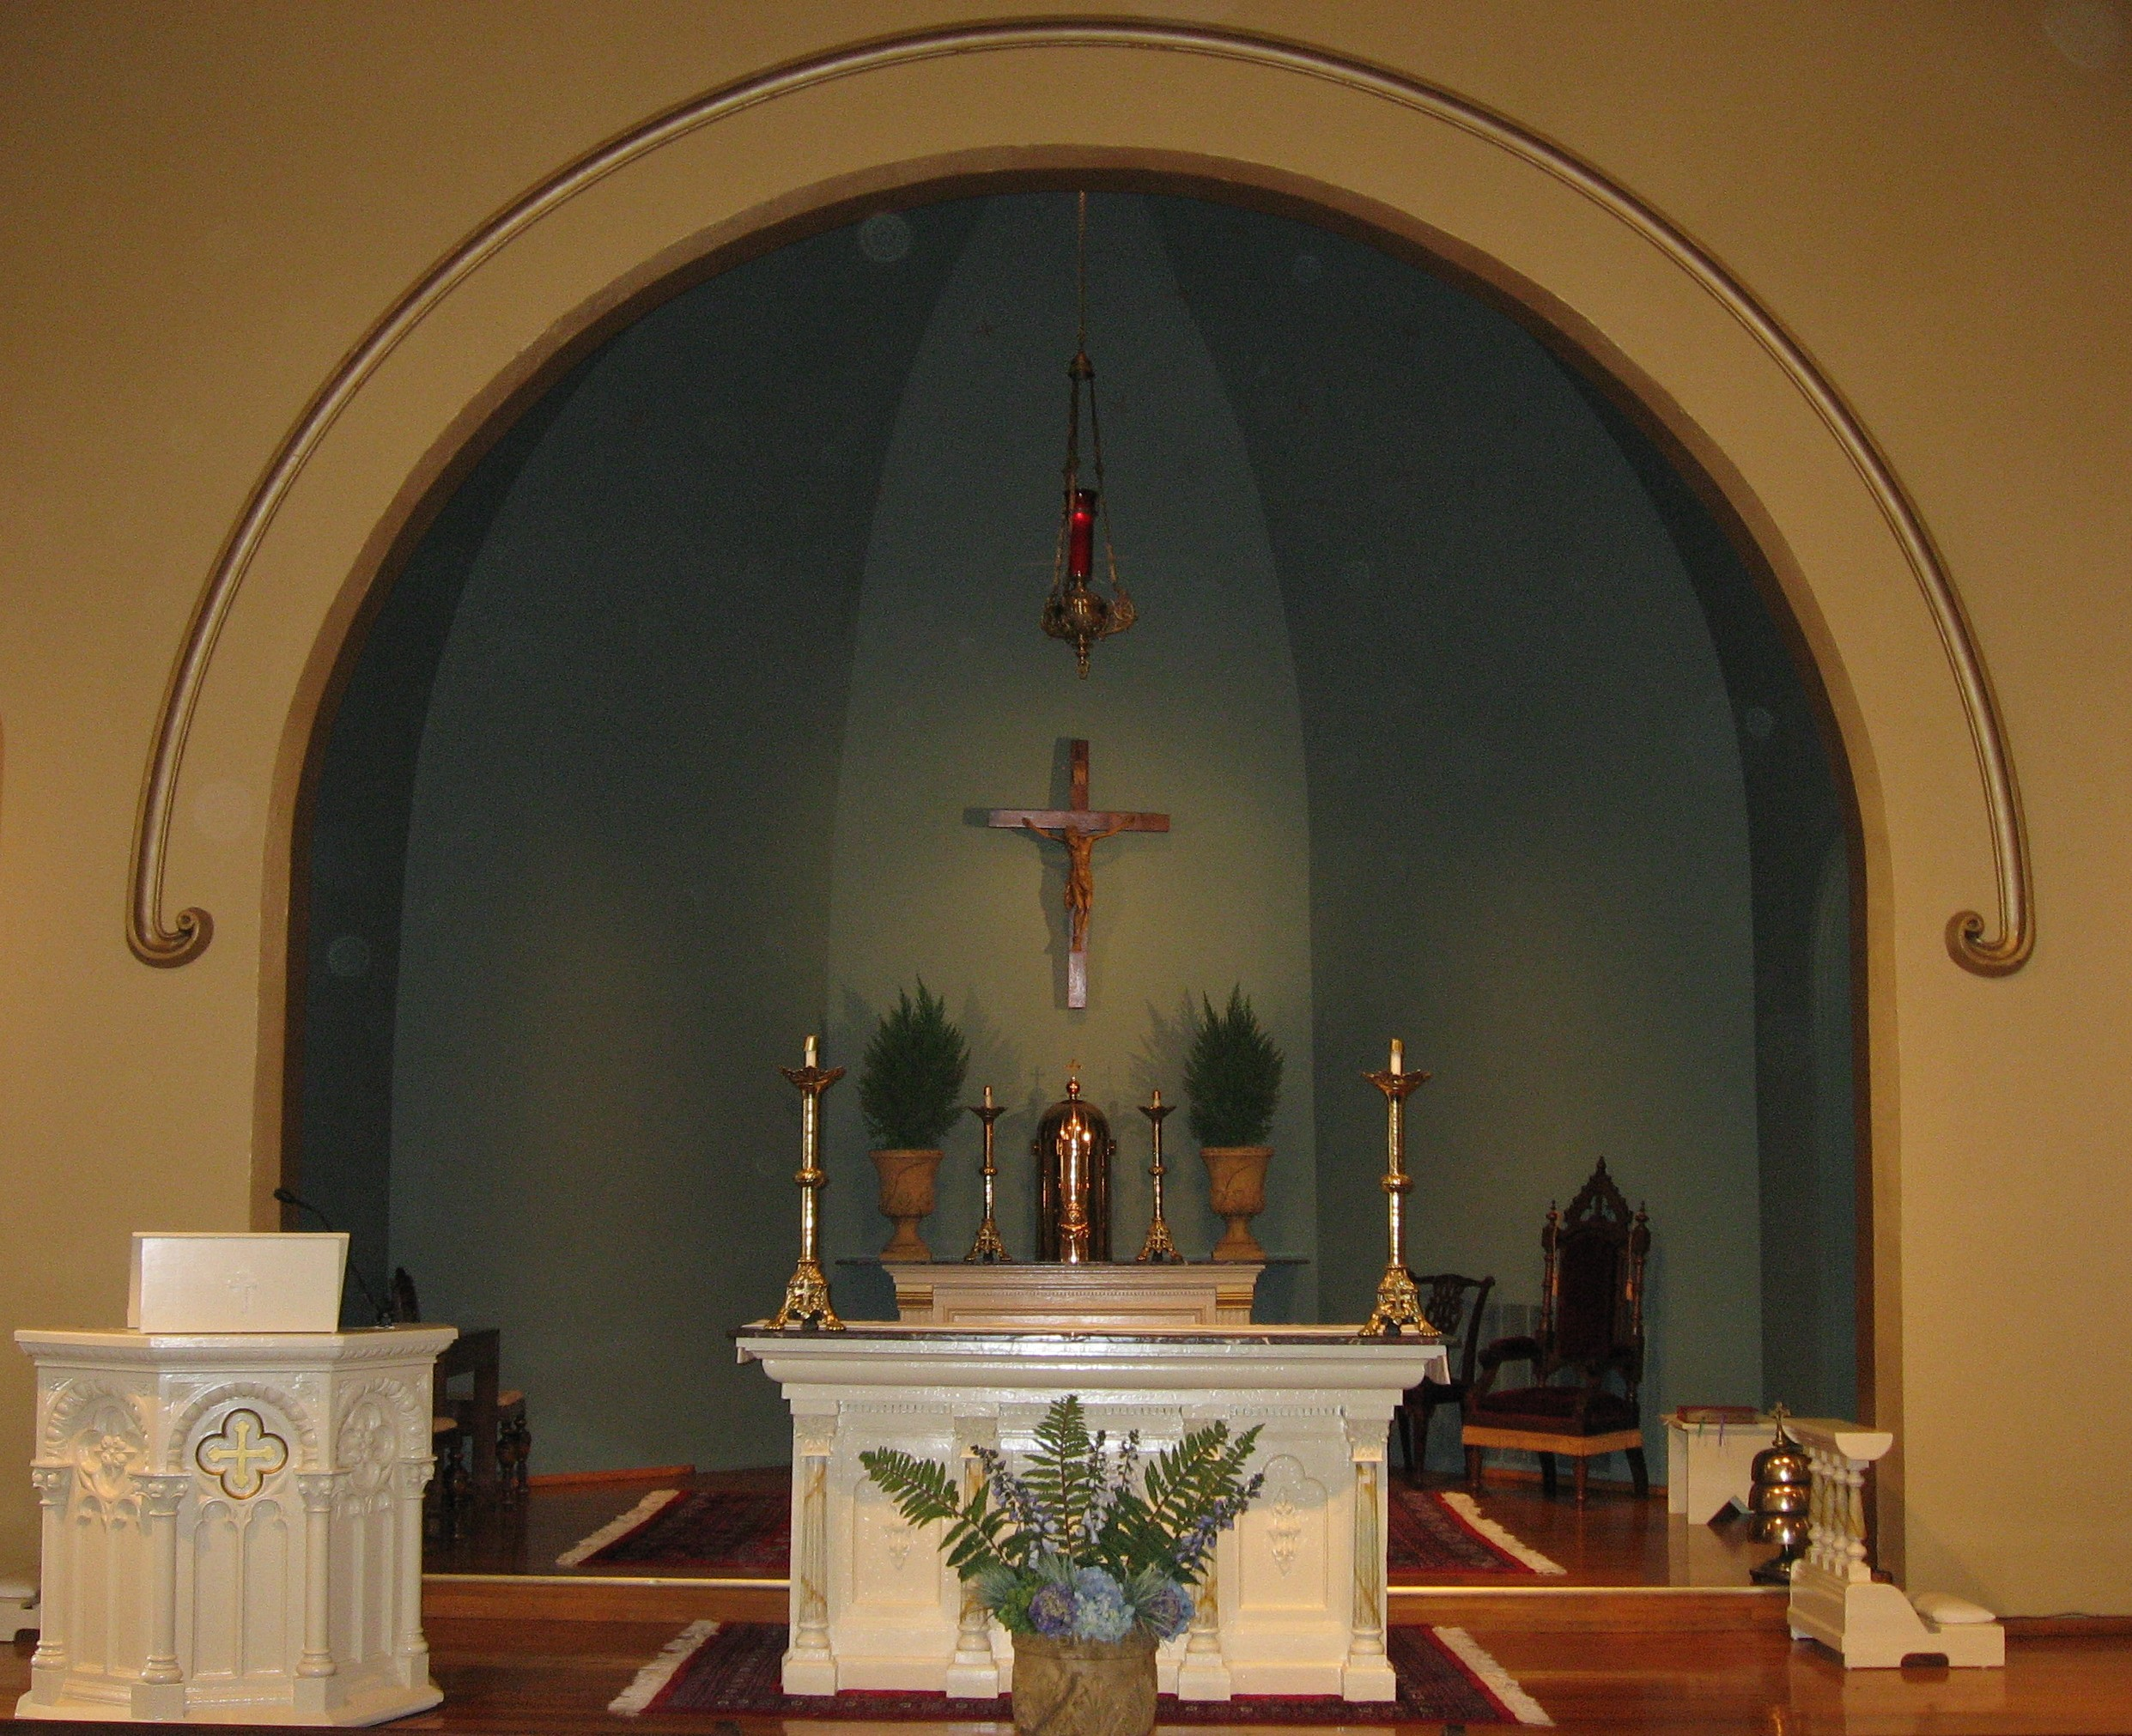 St. Patrick's altar (image from St. Patrick's Church)